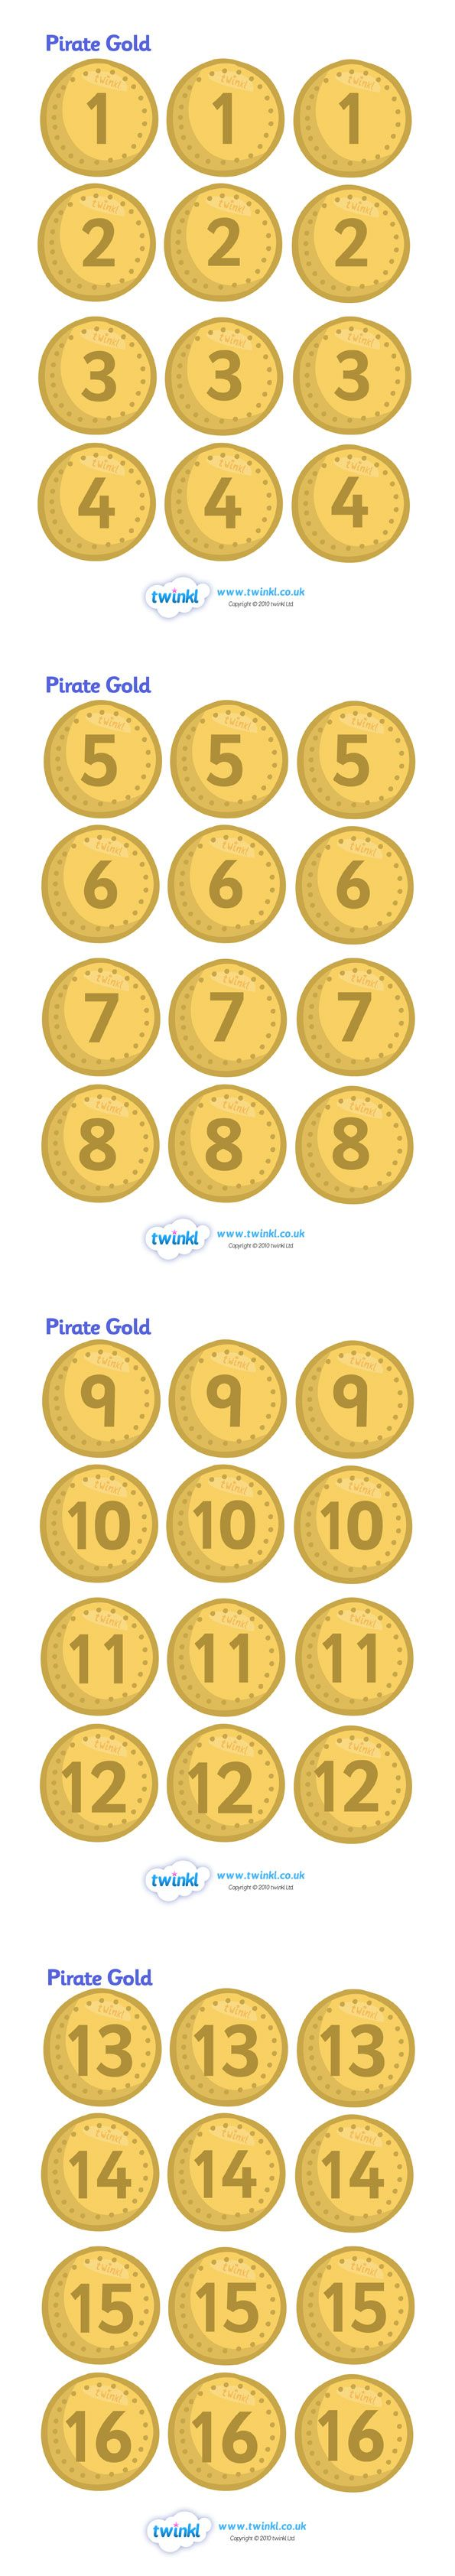 Twinkl Resources >> Pirate Coins  >> Thousands of printable primary teaching resources for EYFS, KS1, KS2 and beyond! coins, money, treasure, numeracy, math, addition, subtraction, activity, pirate, pirate themed, treasure, pirate ship, parrot, treasure chest, jolly roger, ship, island, ocean,